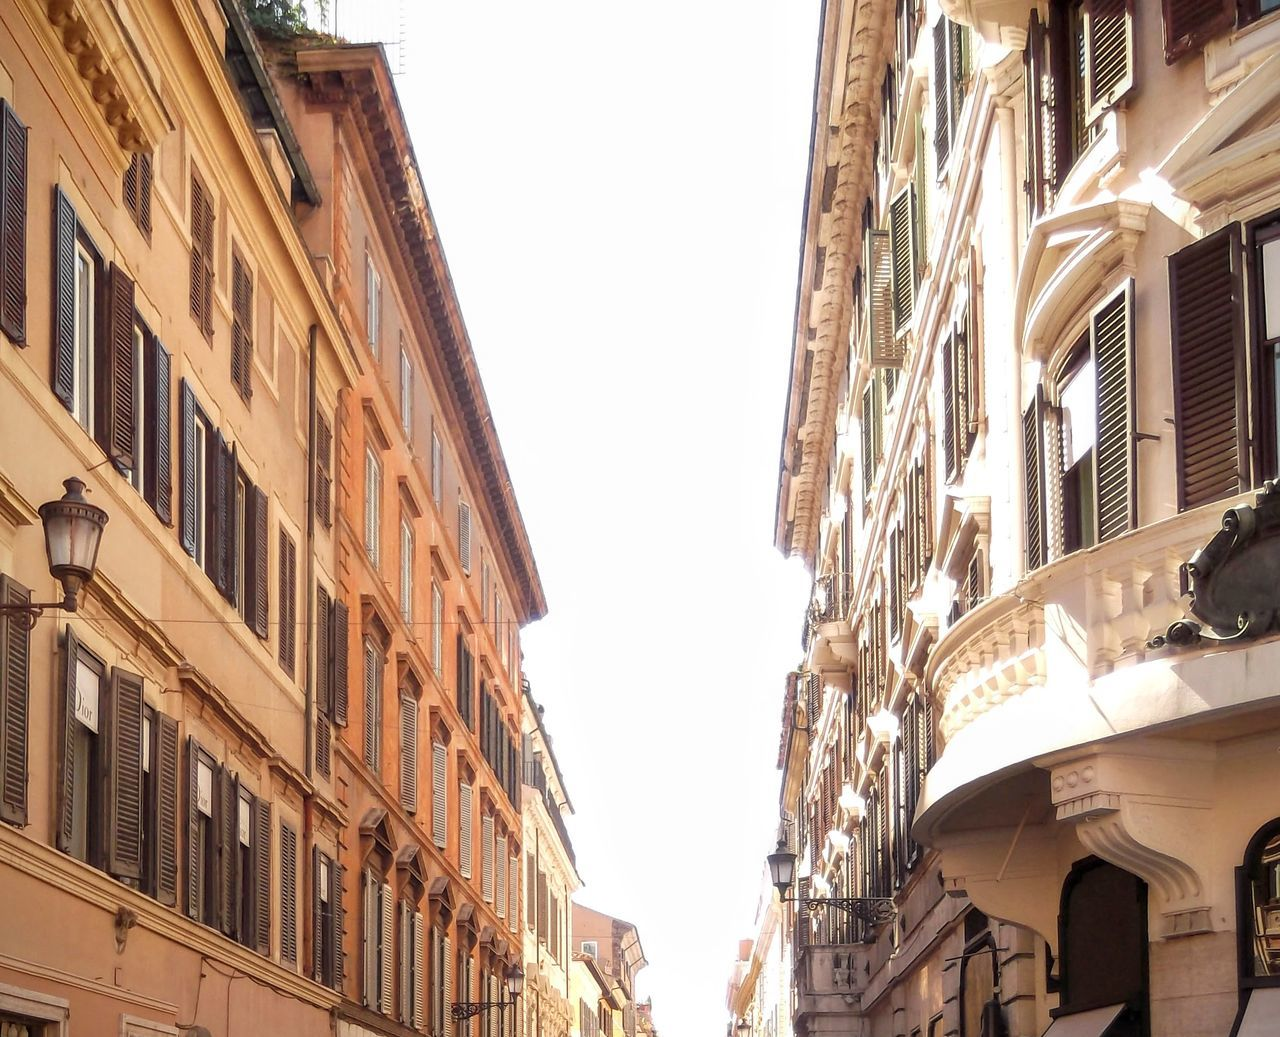 Architecture Building Exterior Built Structure City Day Low Angle View No People Outdoors Roma Rome Rome Italy Rome Italy🇮🇹 Rome, Italy Romestreets Sky Travel Destinations